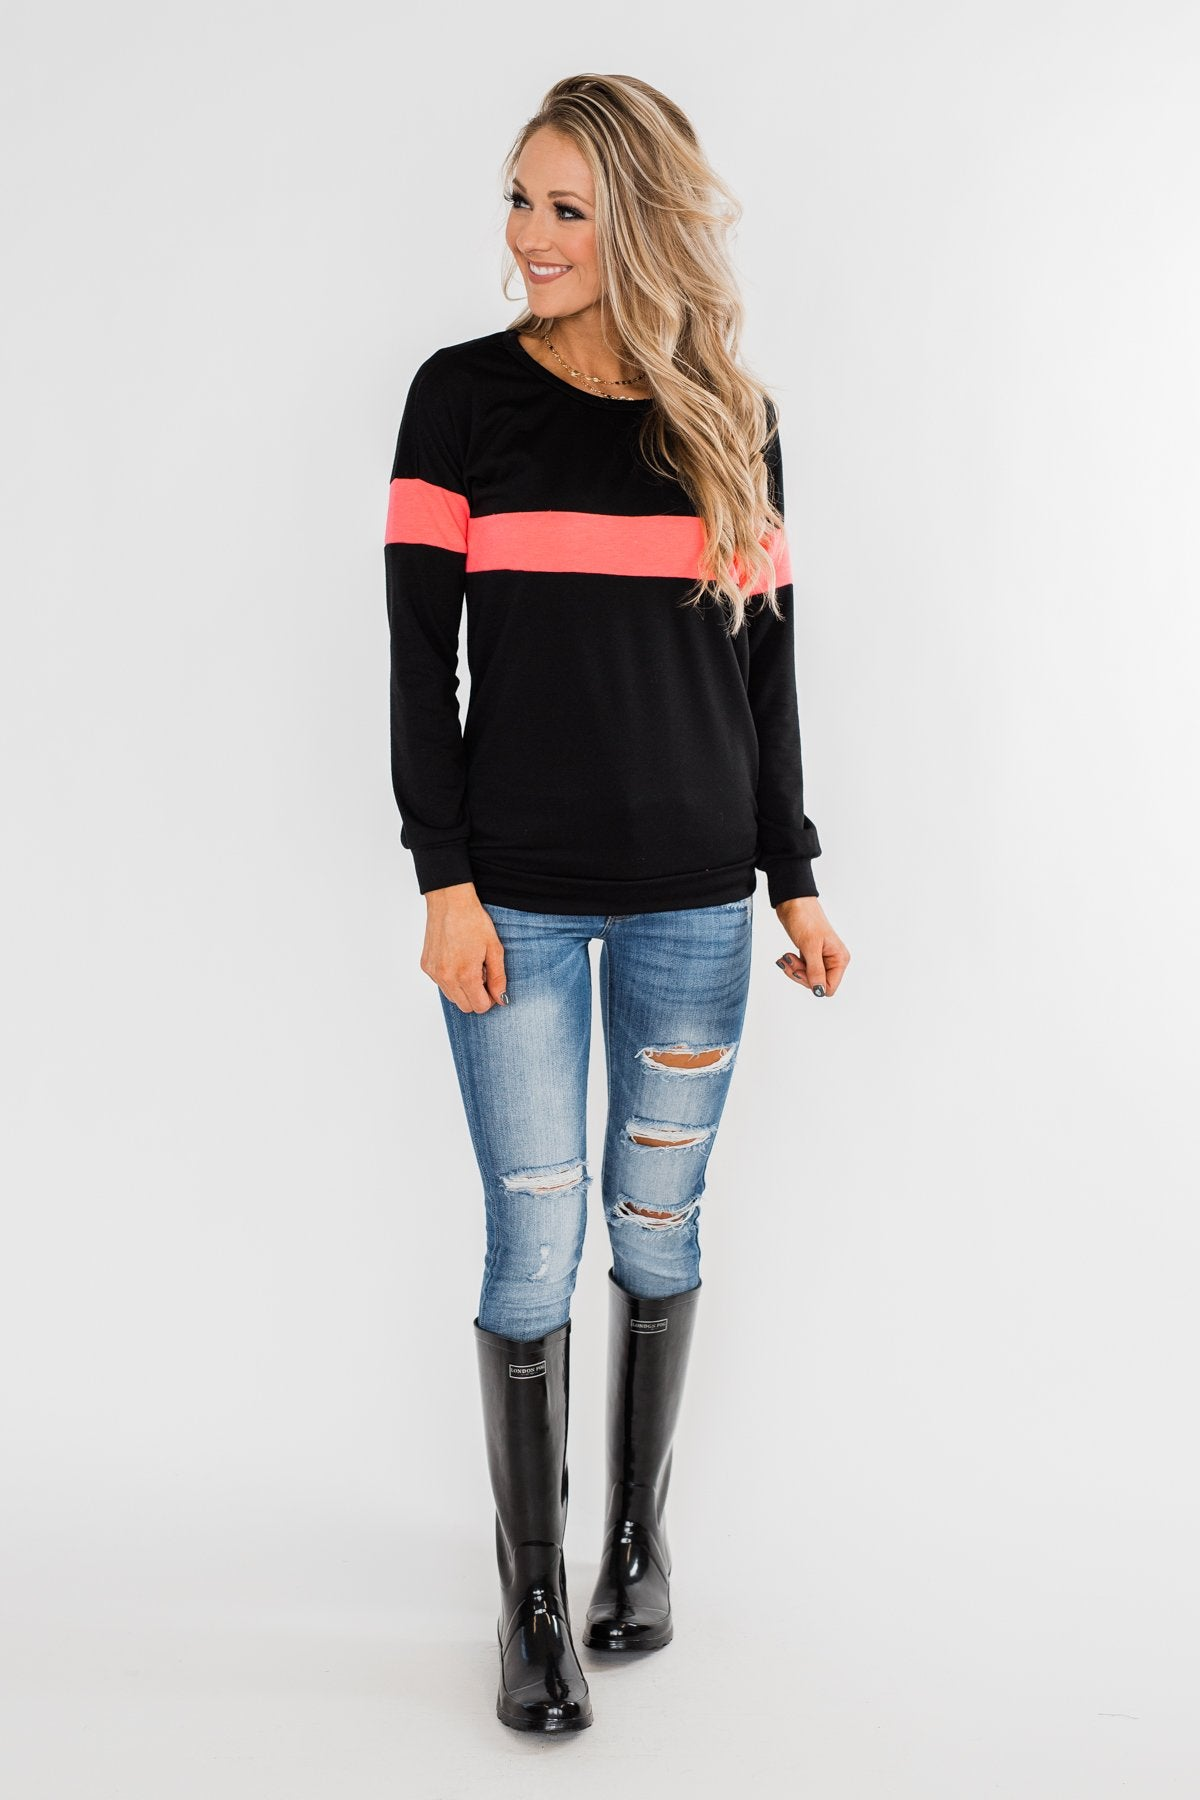 Make No Mistake Long Sleeve Top- Black & Neon Pink